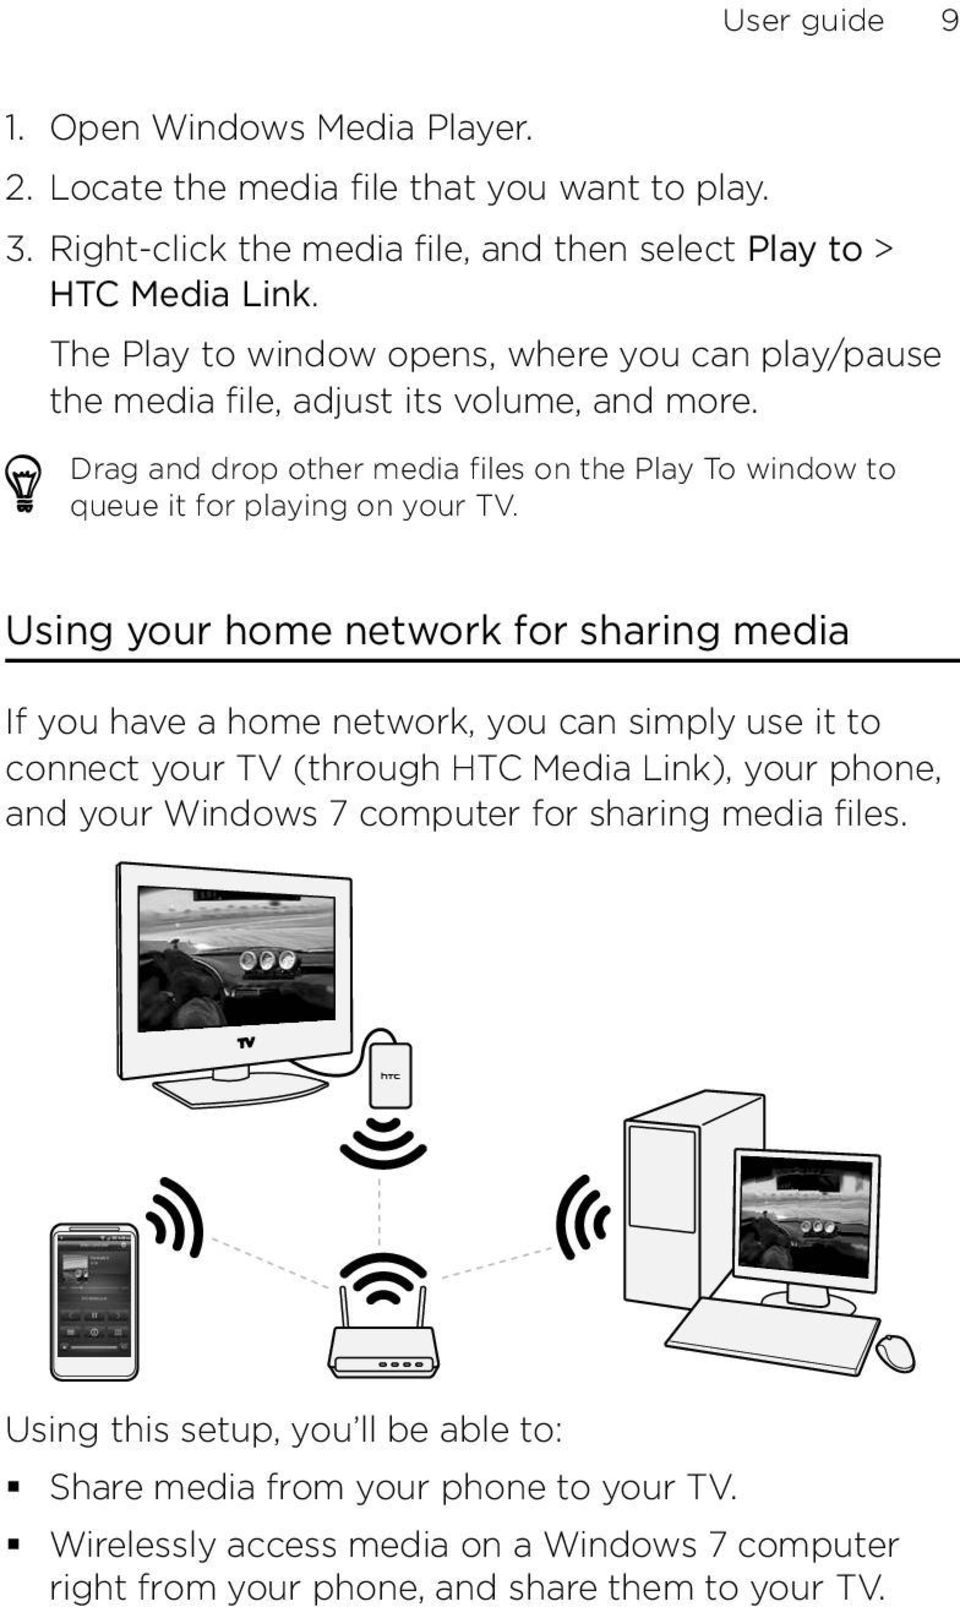 Drag and drop other media files on the Play To window to queue it for playing on your TV.